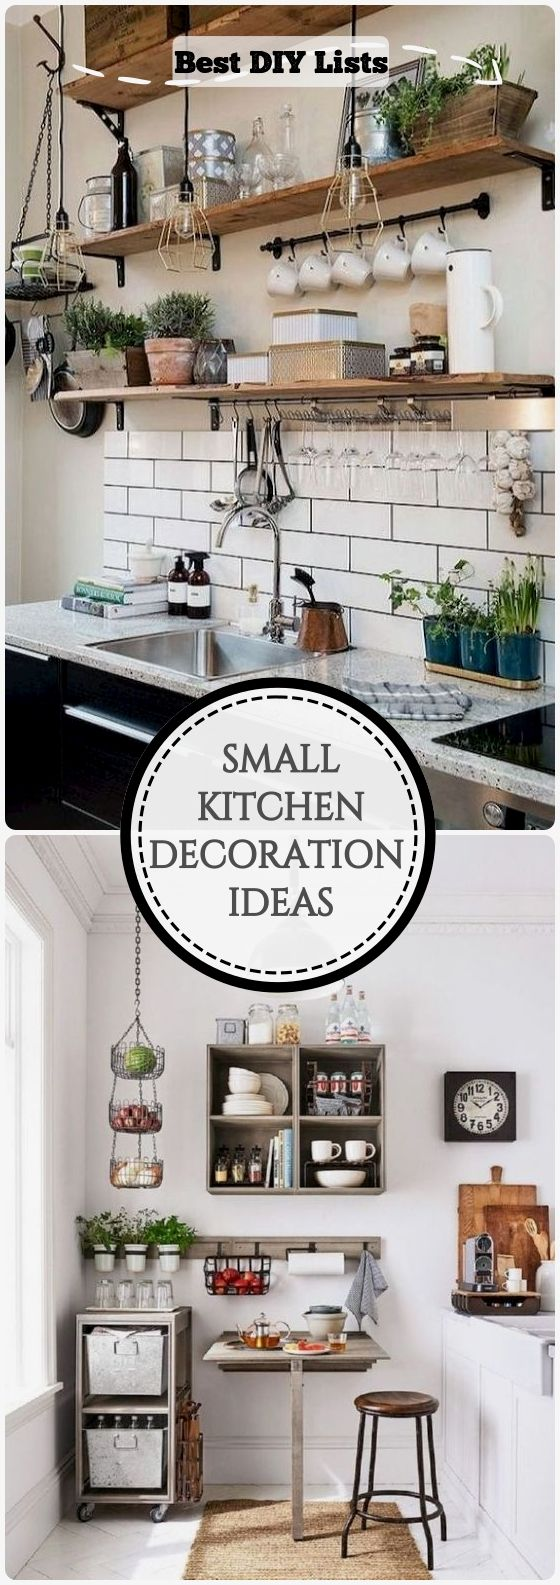 9 Clever Ideas For Small Kitchen Decoration - BEST DIY LISTS in